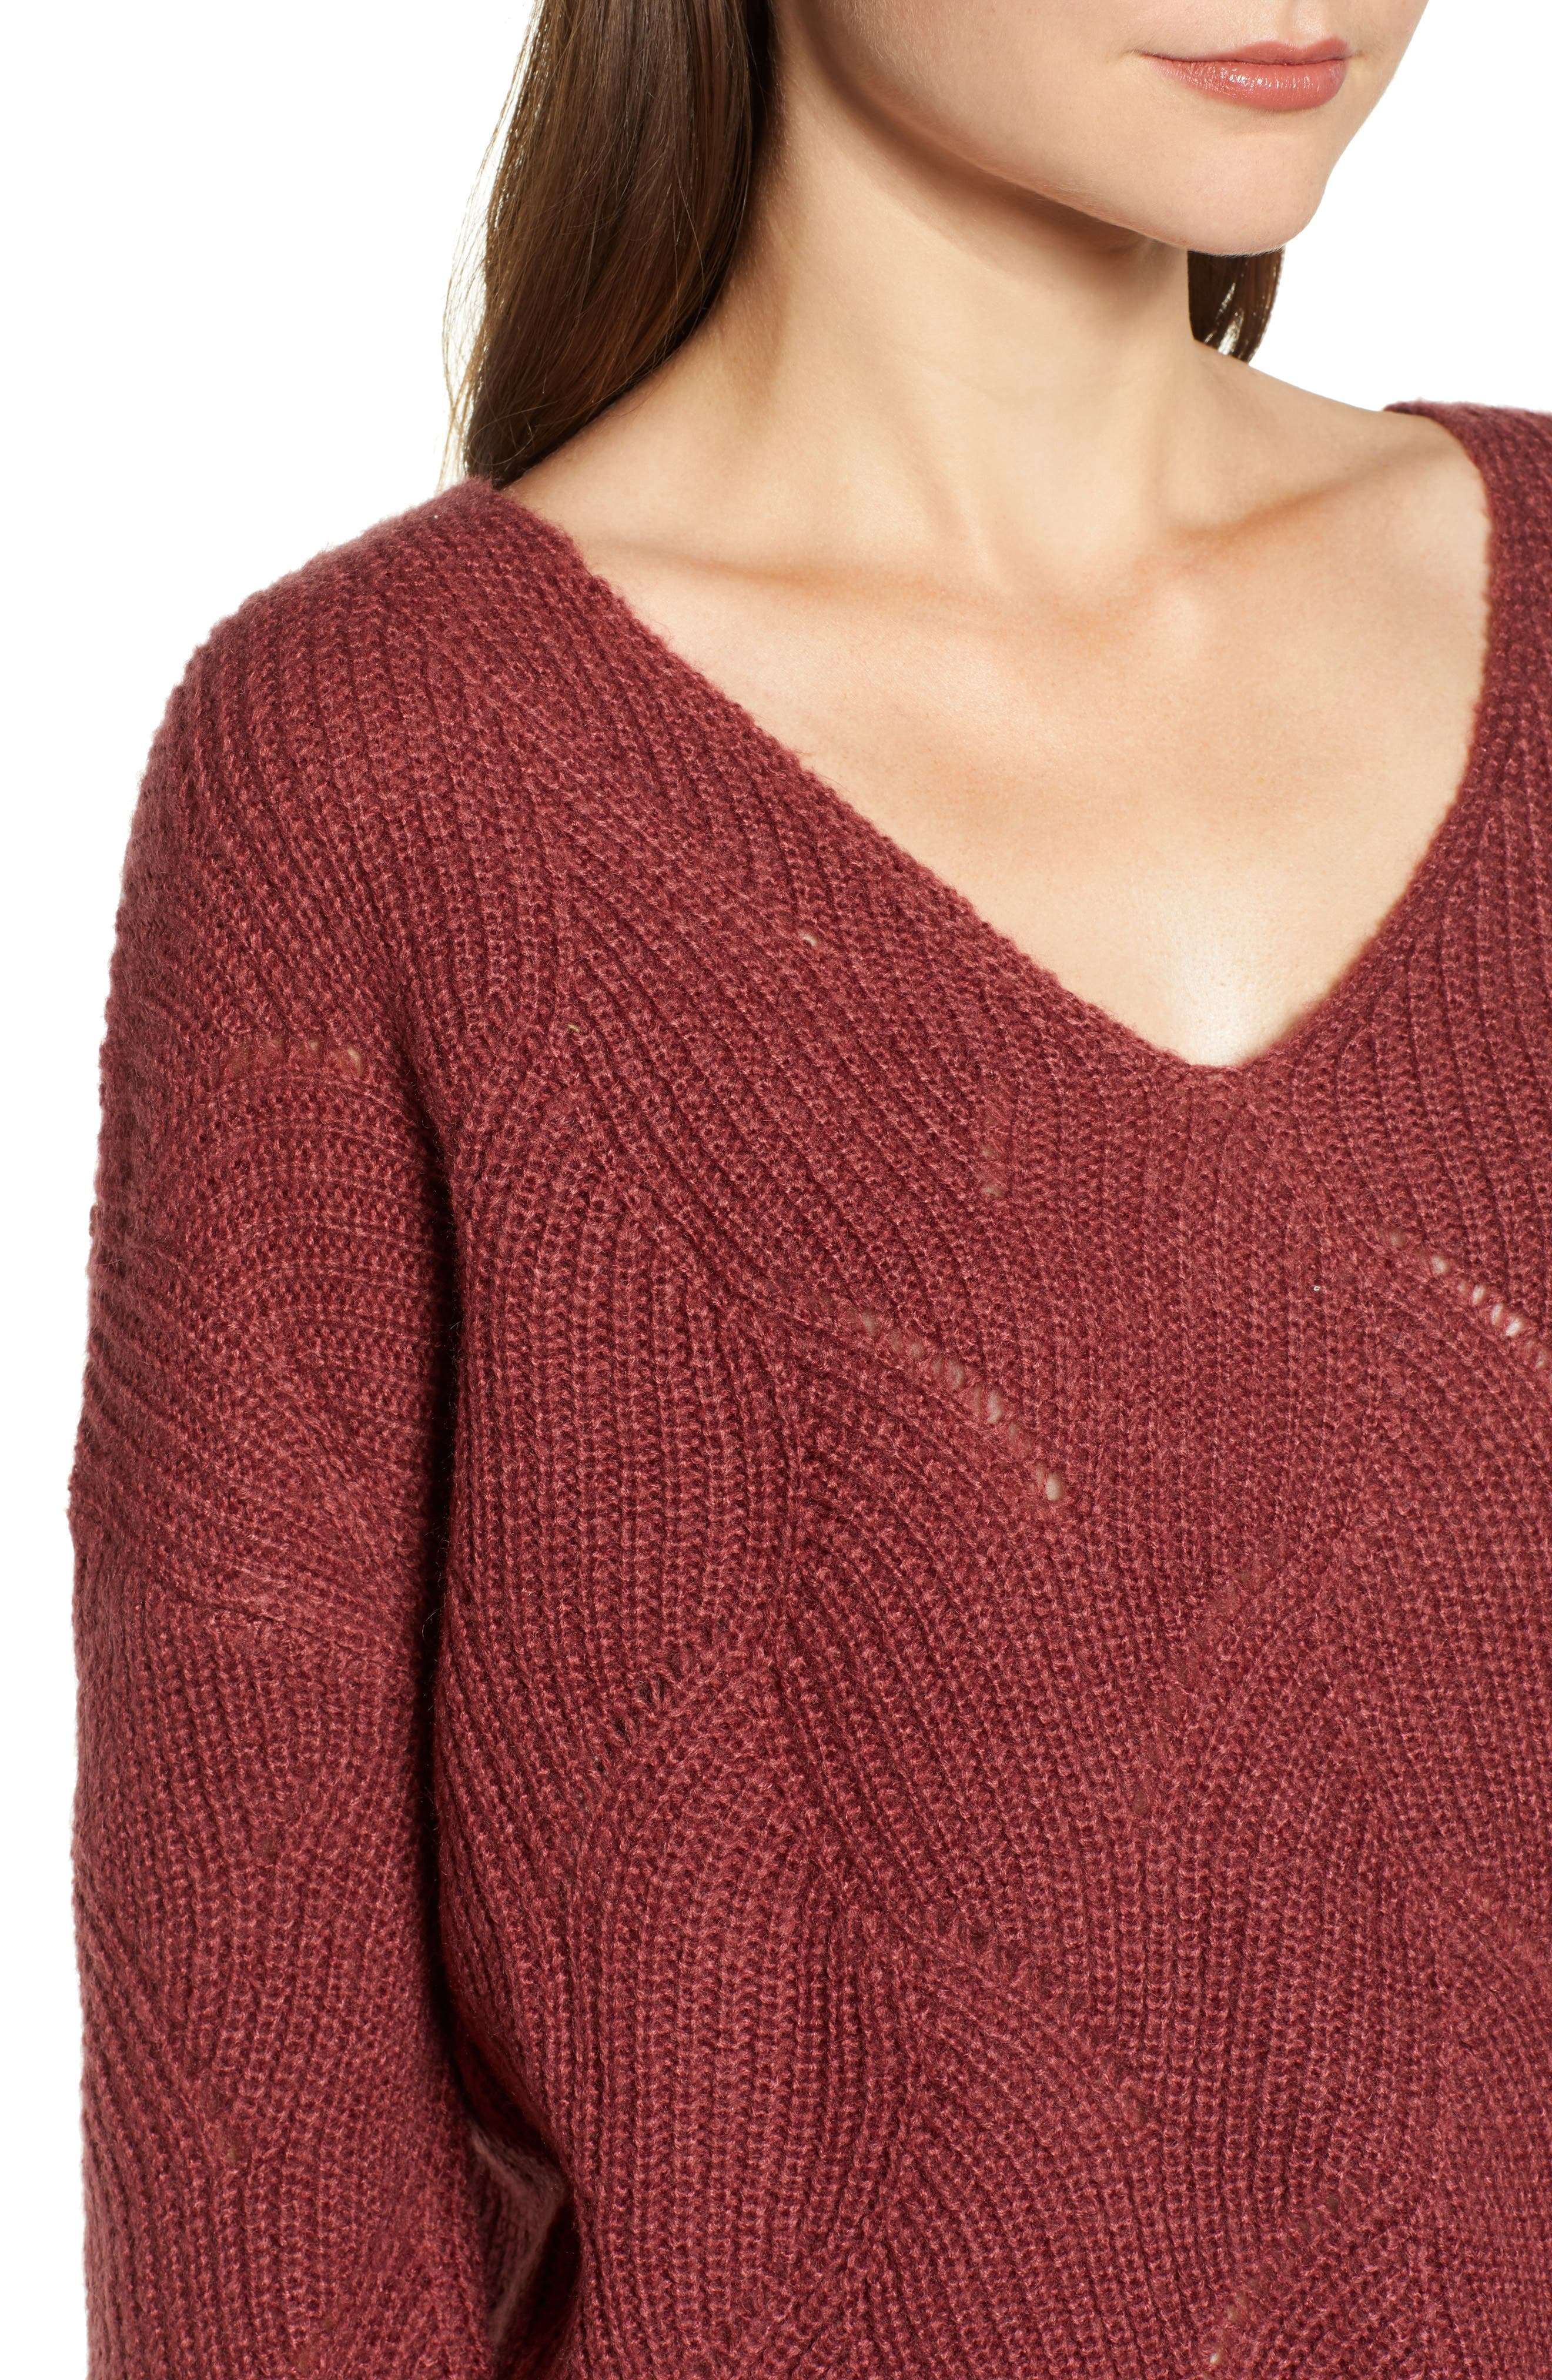 ROXY,                             See You In Bali Sweater,                             Alternate thumbnail 4, color,                             600